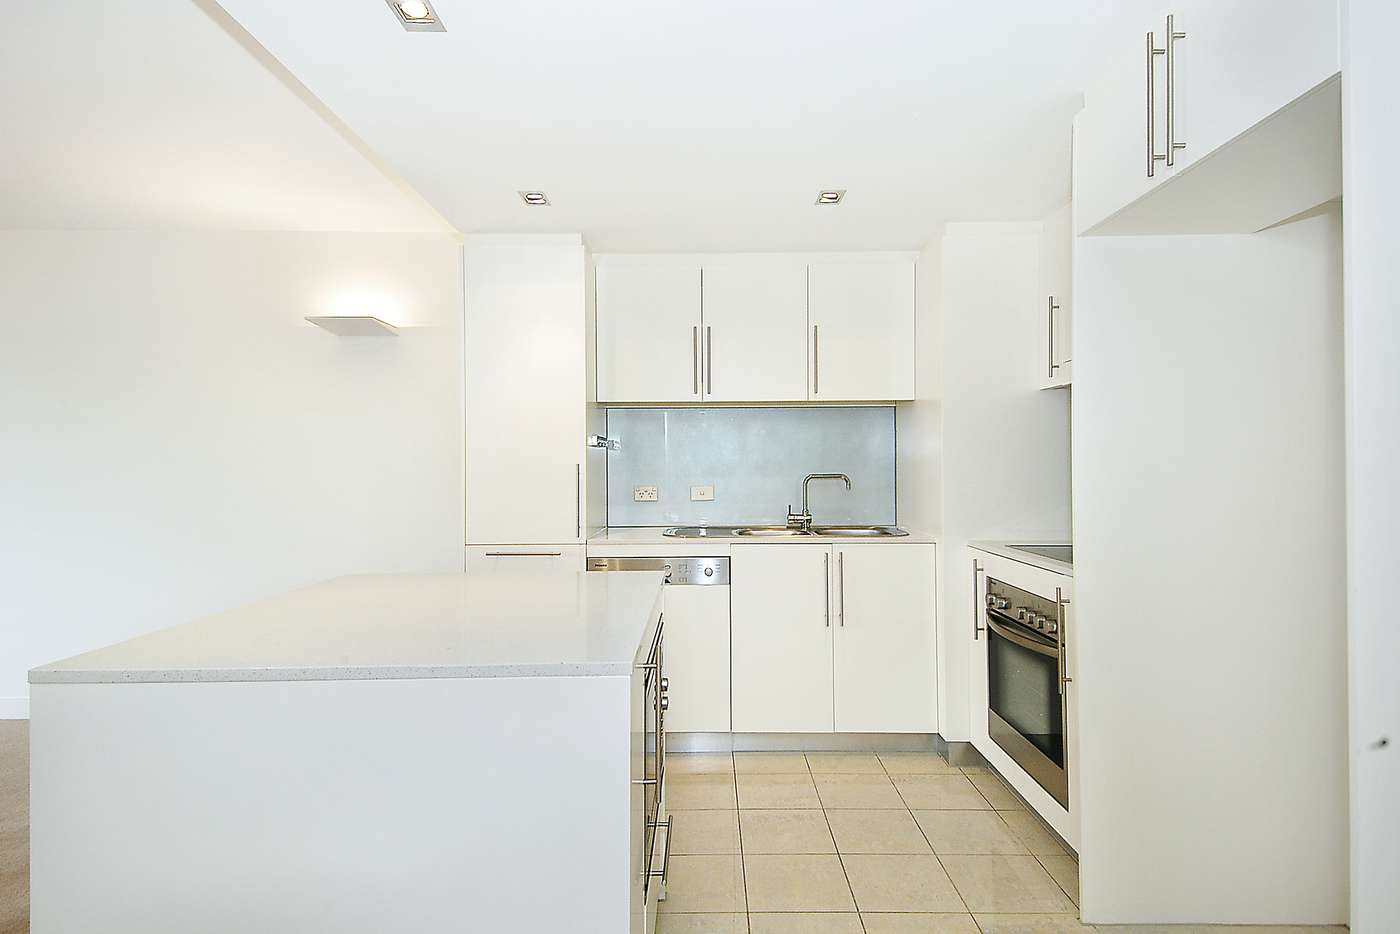 Sixth view of Homely apartment listing, 602/20 Pelican Street, Surry Hills NSW 2010